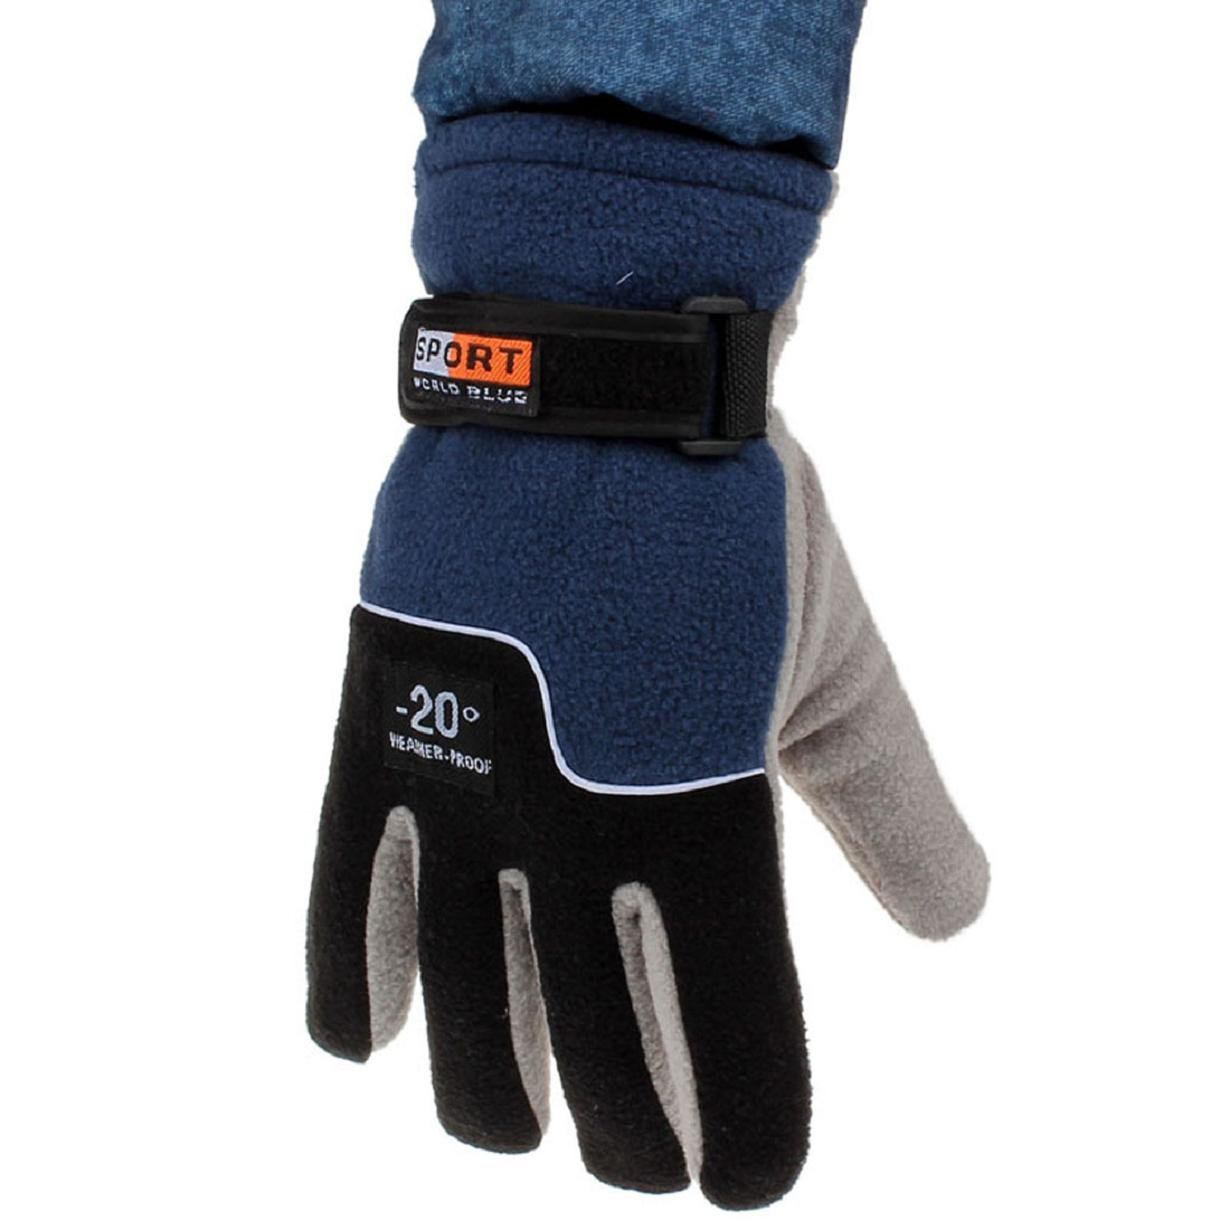 Welcomeuni Windproof Men Thermal Winter Motorcycle Ski Snow Snowboard Gloves